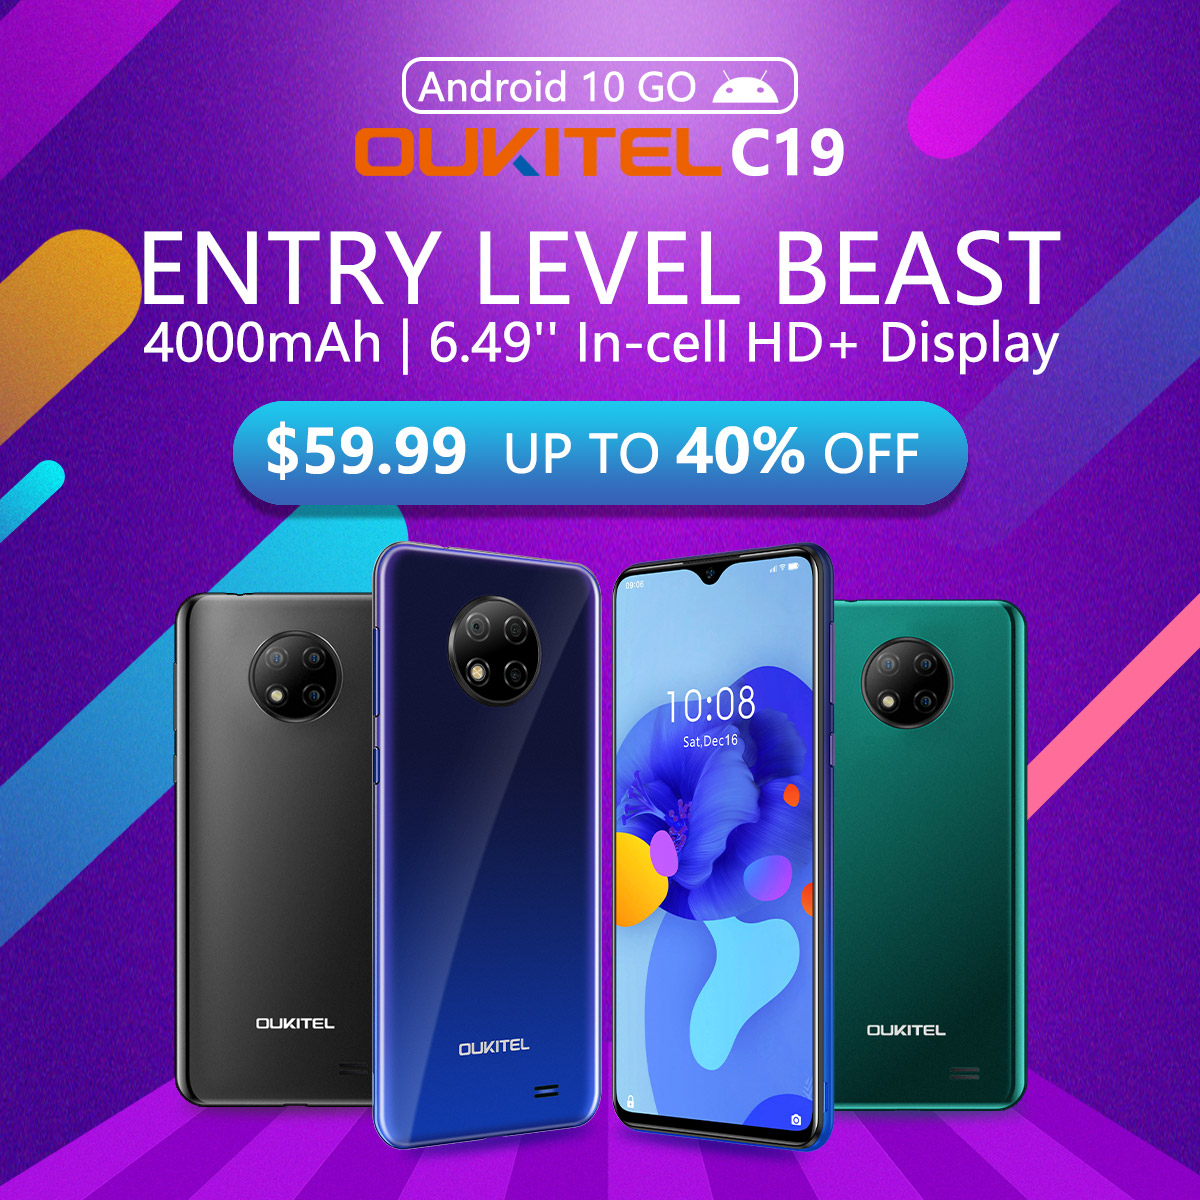 Last chance to grab your #OUKITELC19